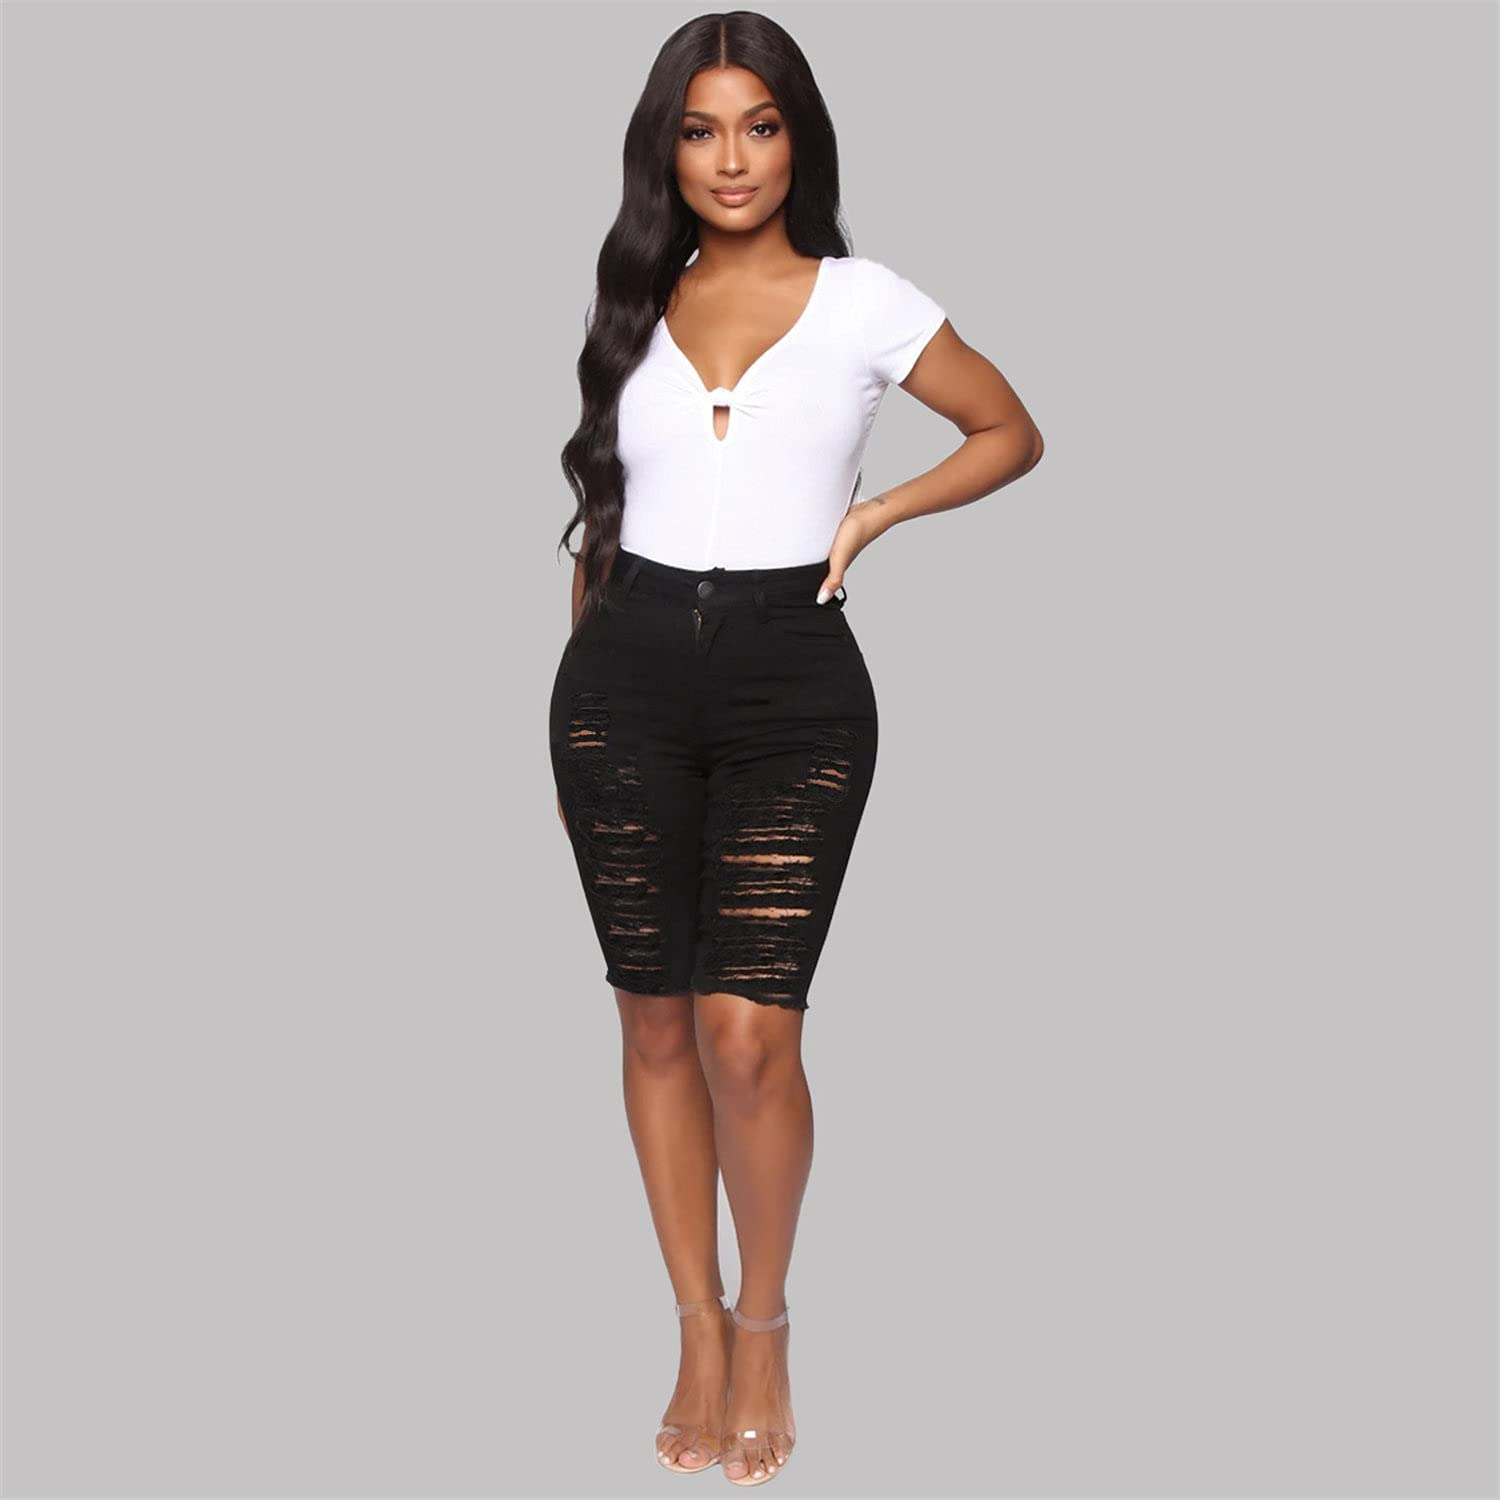 Ripped Denim Bermuda Shorts for Women Destroyed Stretchy High Waist Short Jeans Distressed Knee Lenght Jean Shorts (Black,Large)